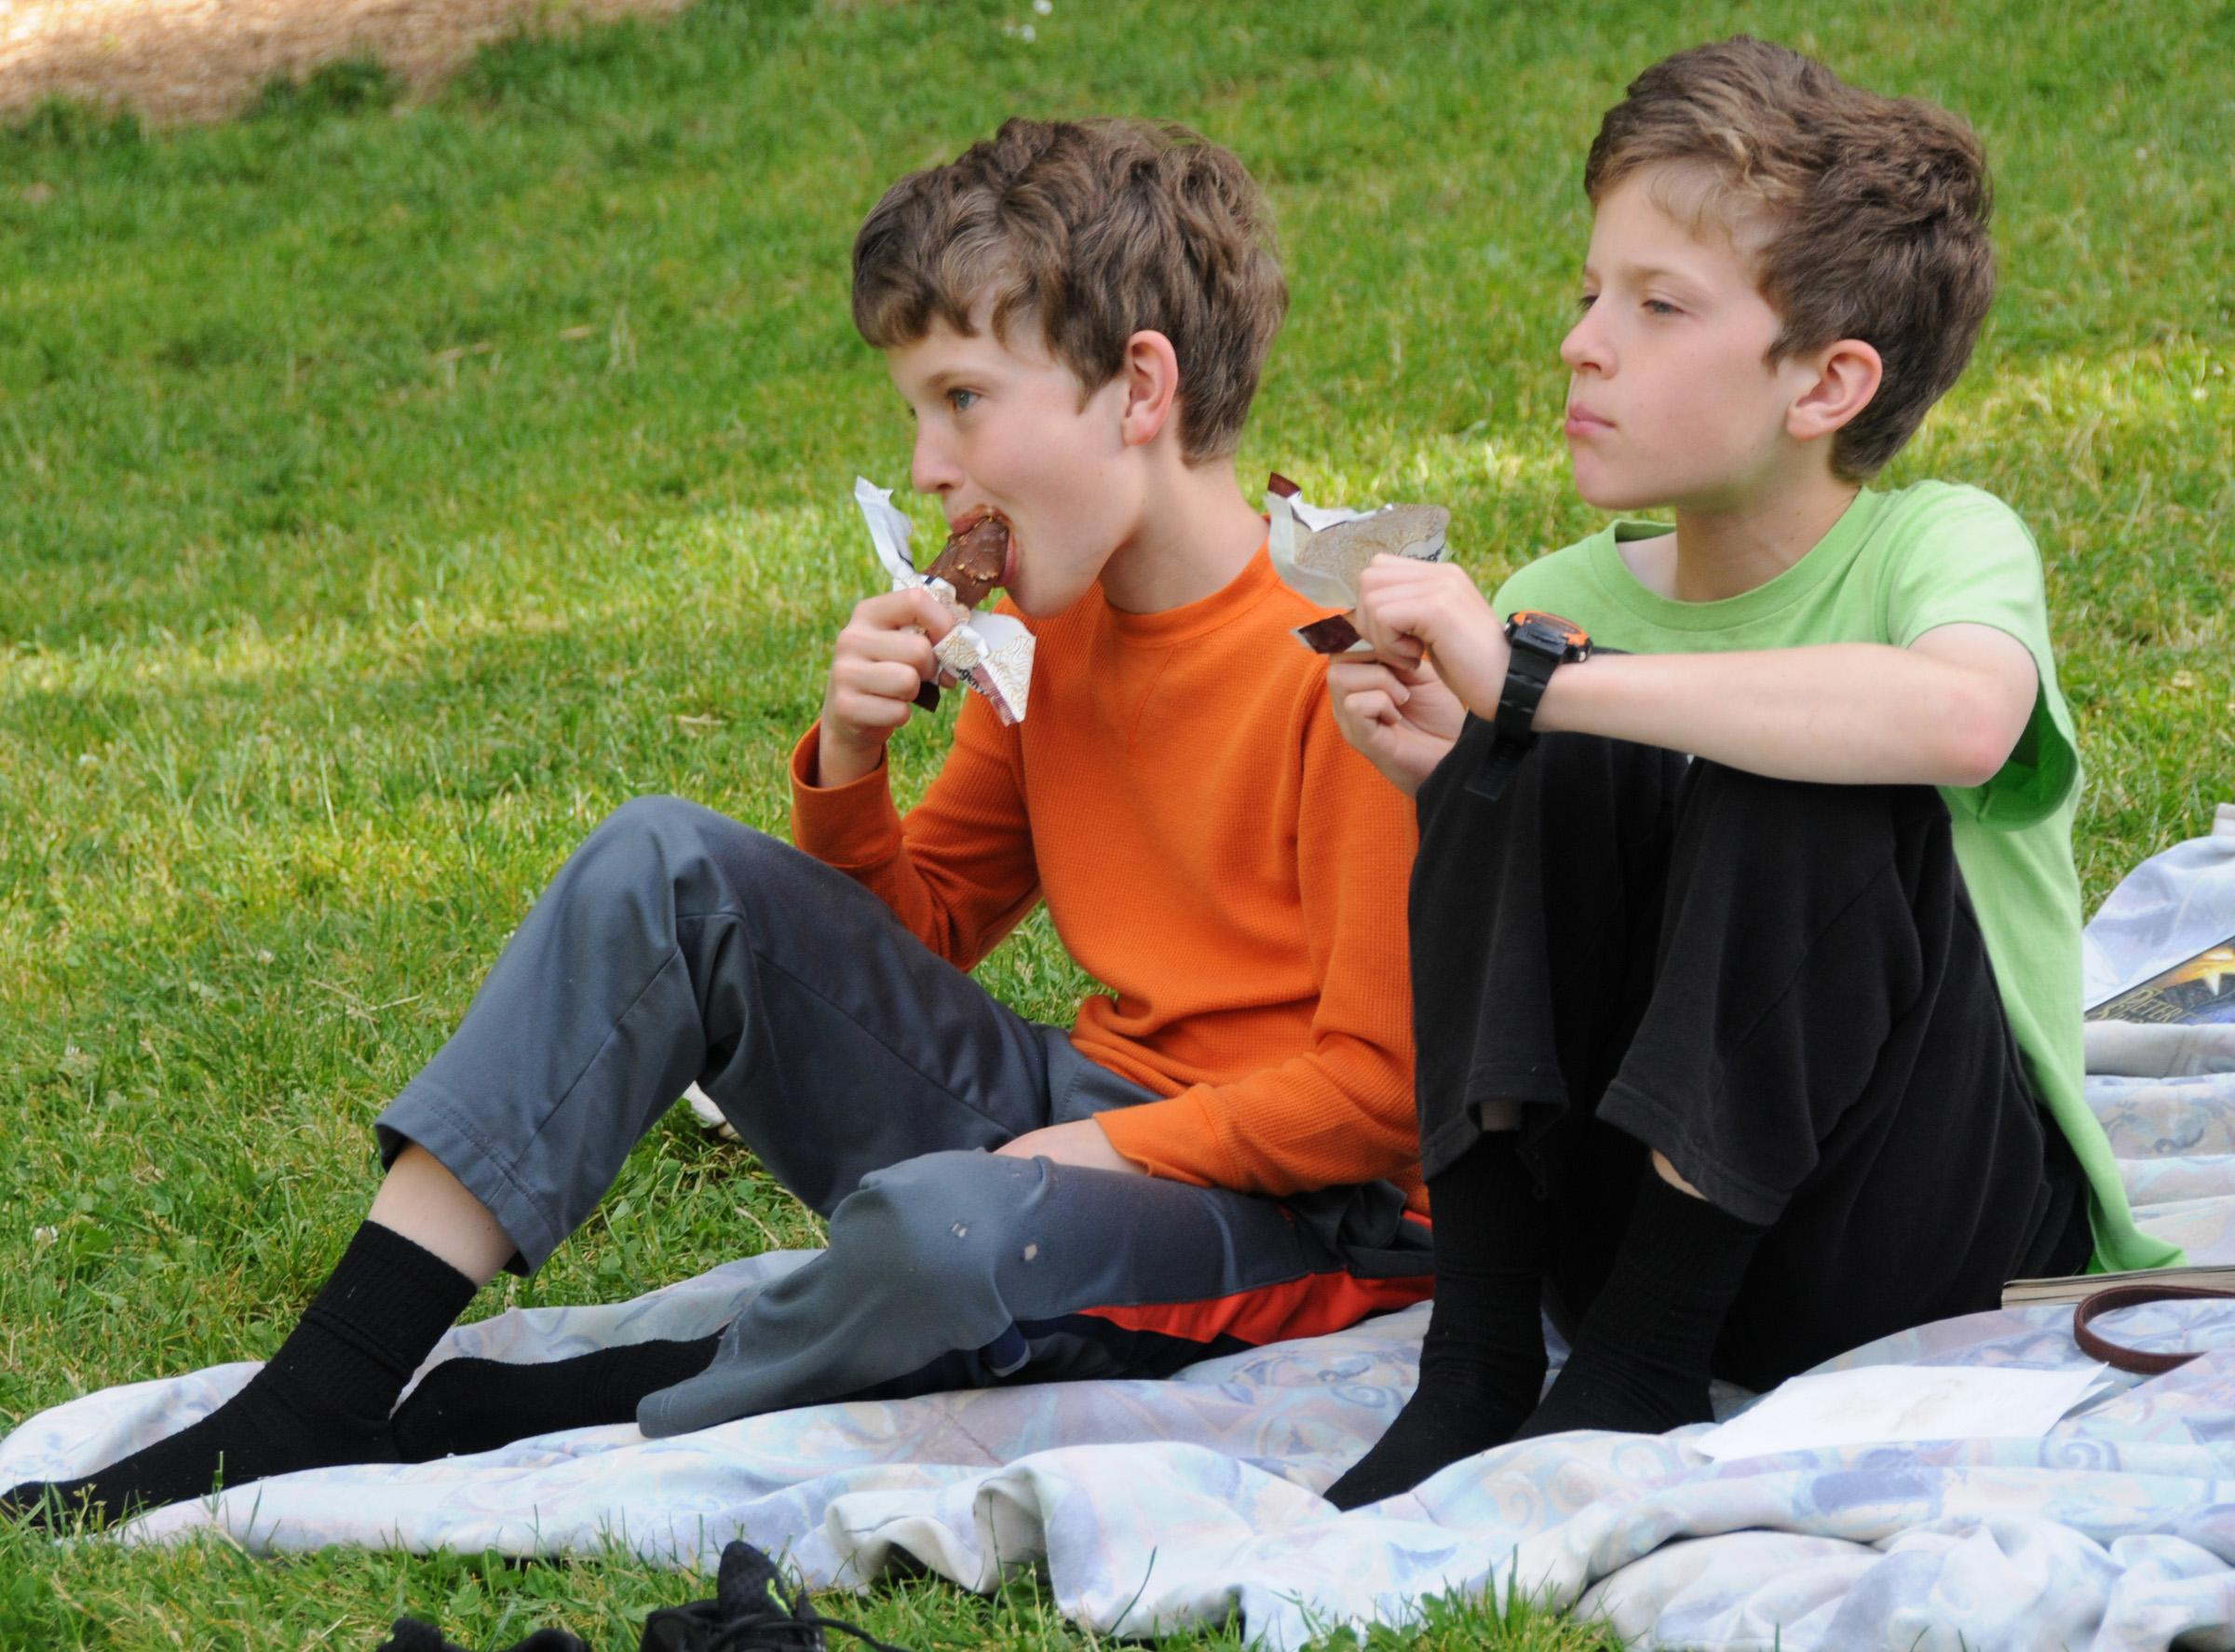 Ashland twins Nathan (left) and Blake Yockey, 11, enjoy cool jazz and cool treats during the Dixieland pre-program at their first-ever concert in the park. (Photo by Jim Flint)